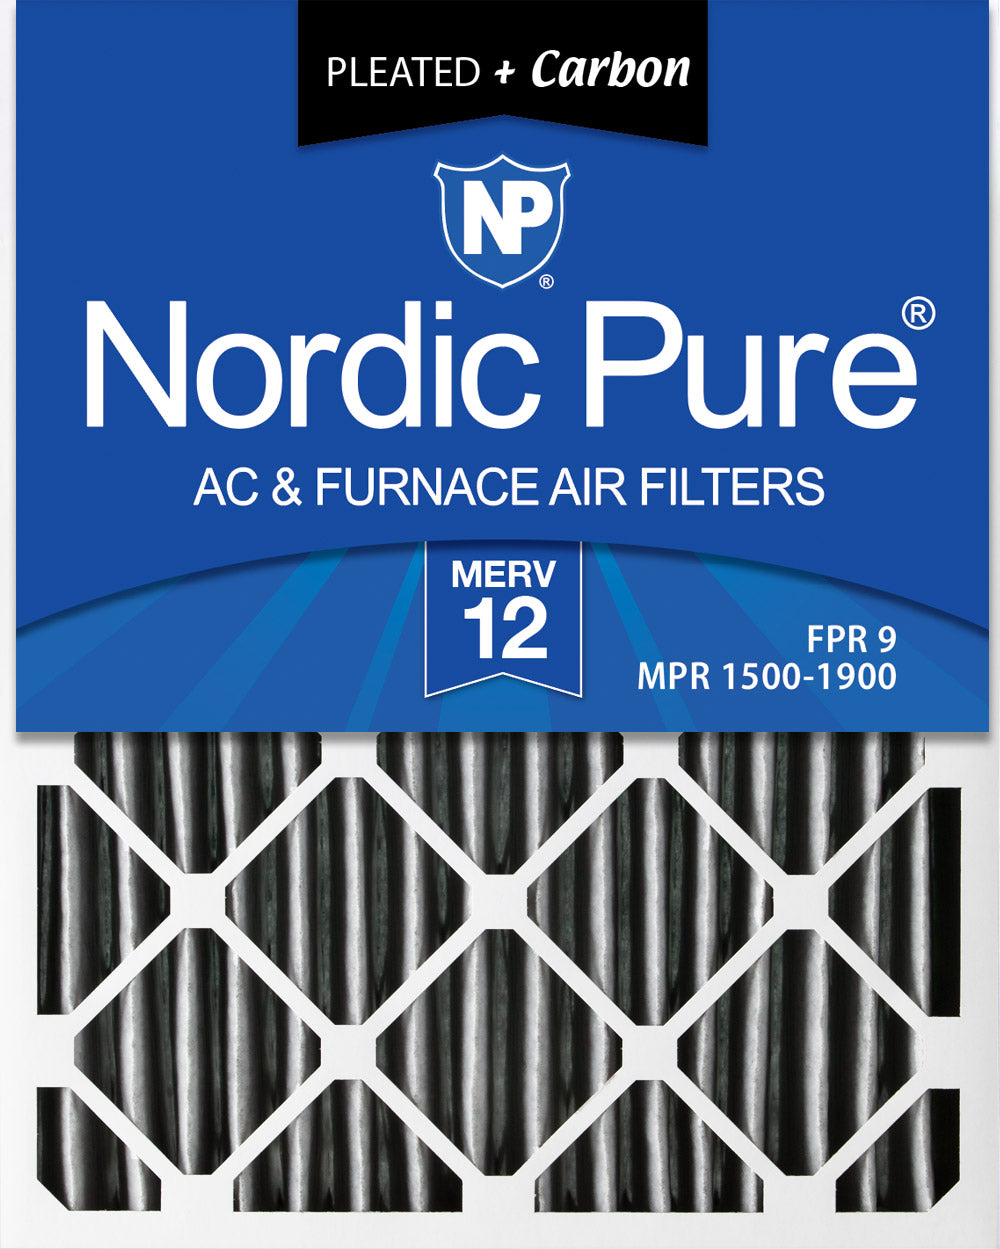 20x25x4 (3 5/8) Furnace Air Filters MERV 12 Pleated Plus Carbon 2 Packs